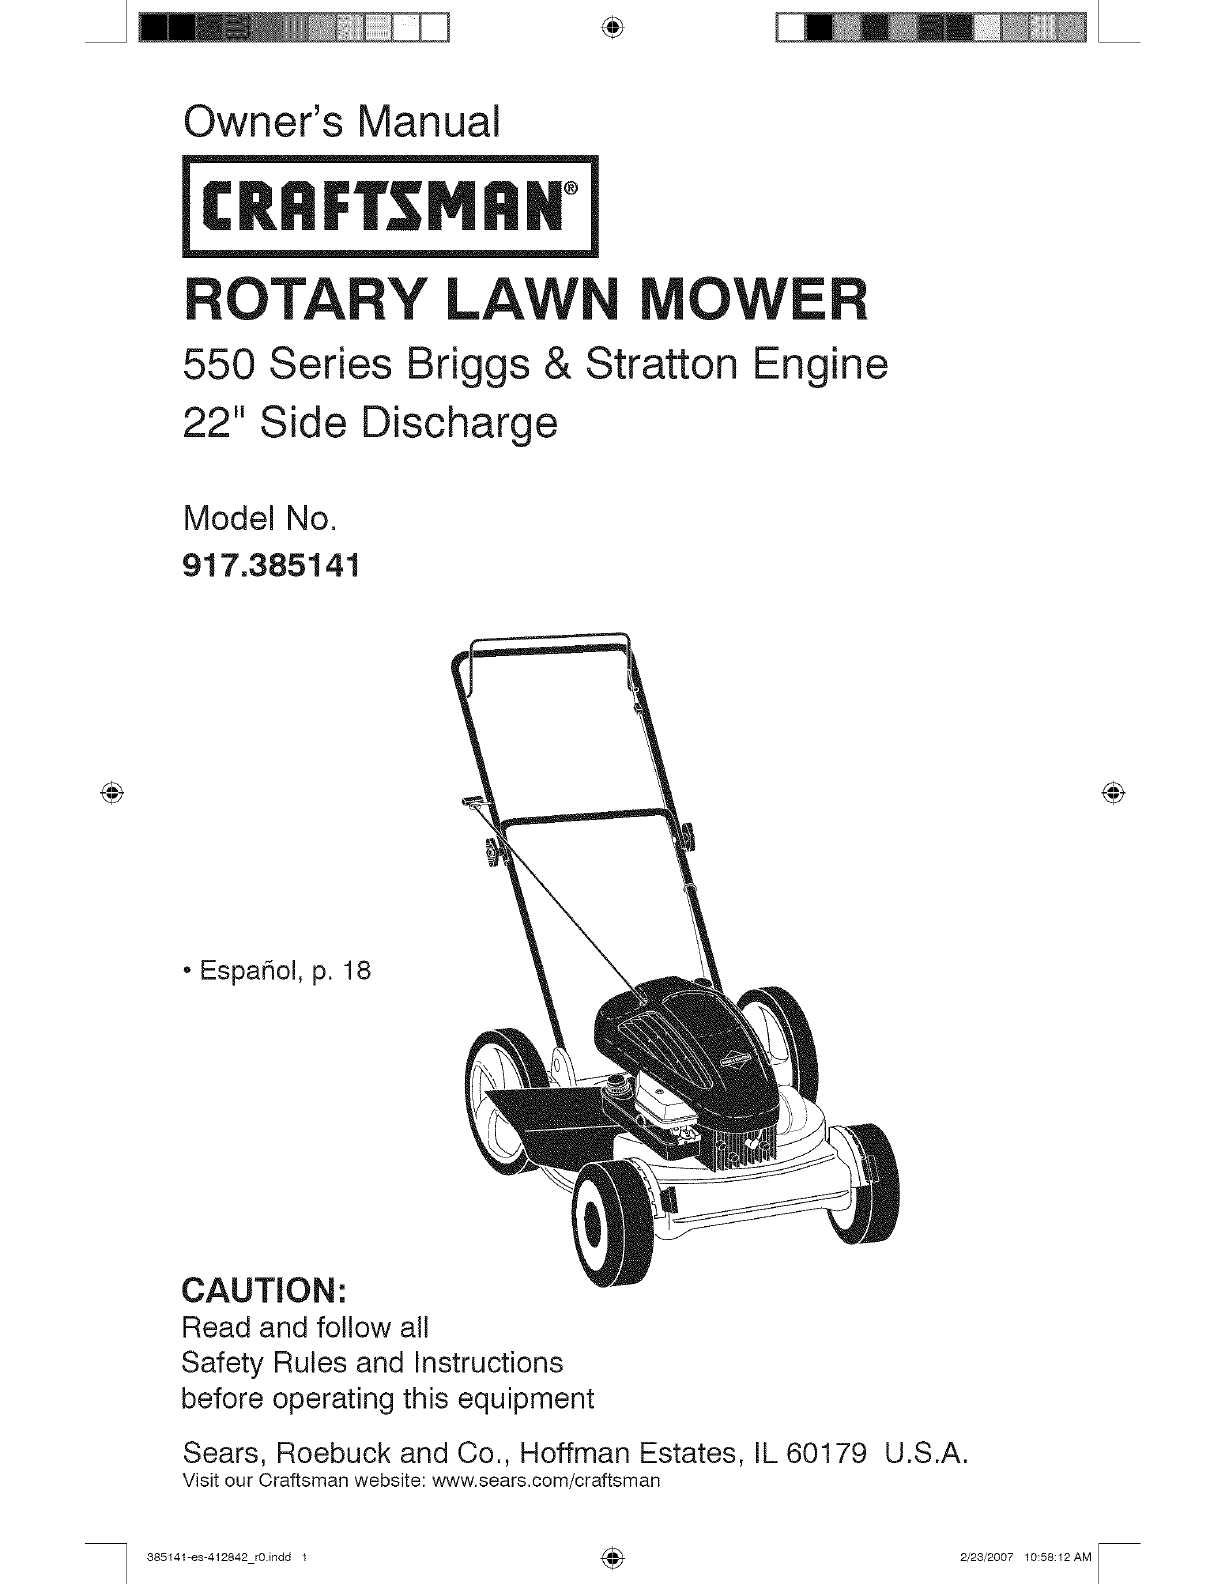 Craftsman Lawn Mower 917 User Guide